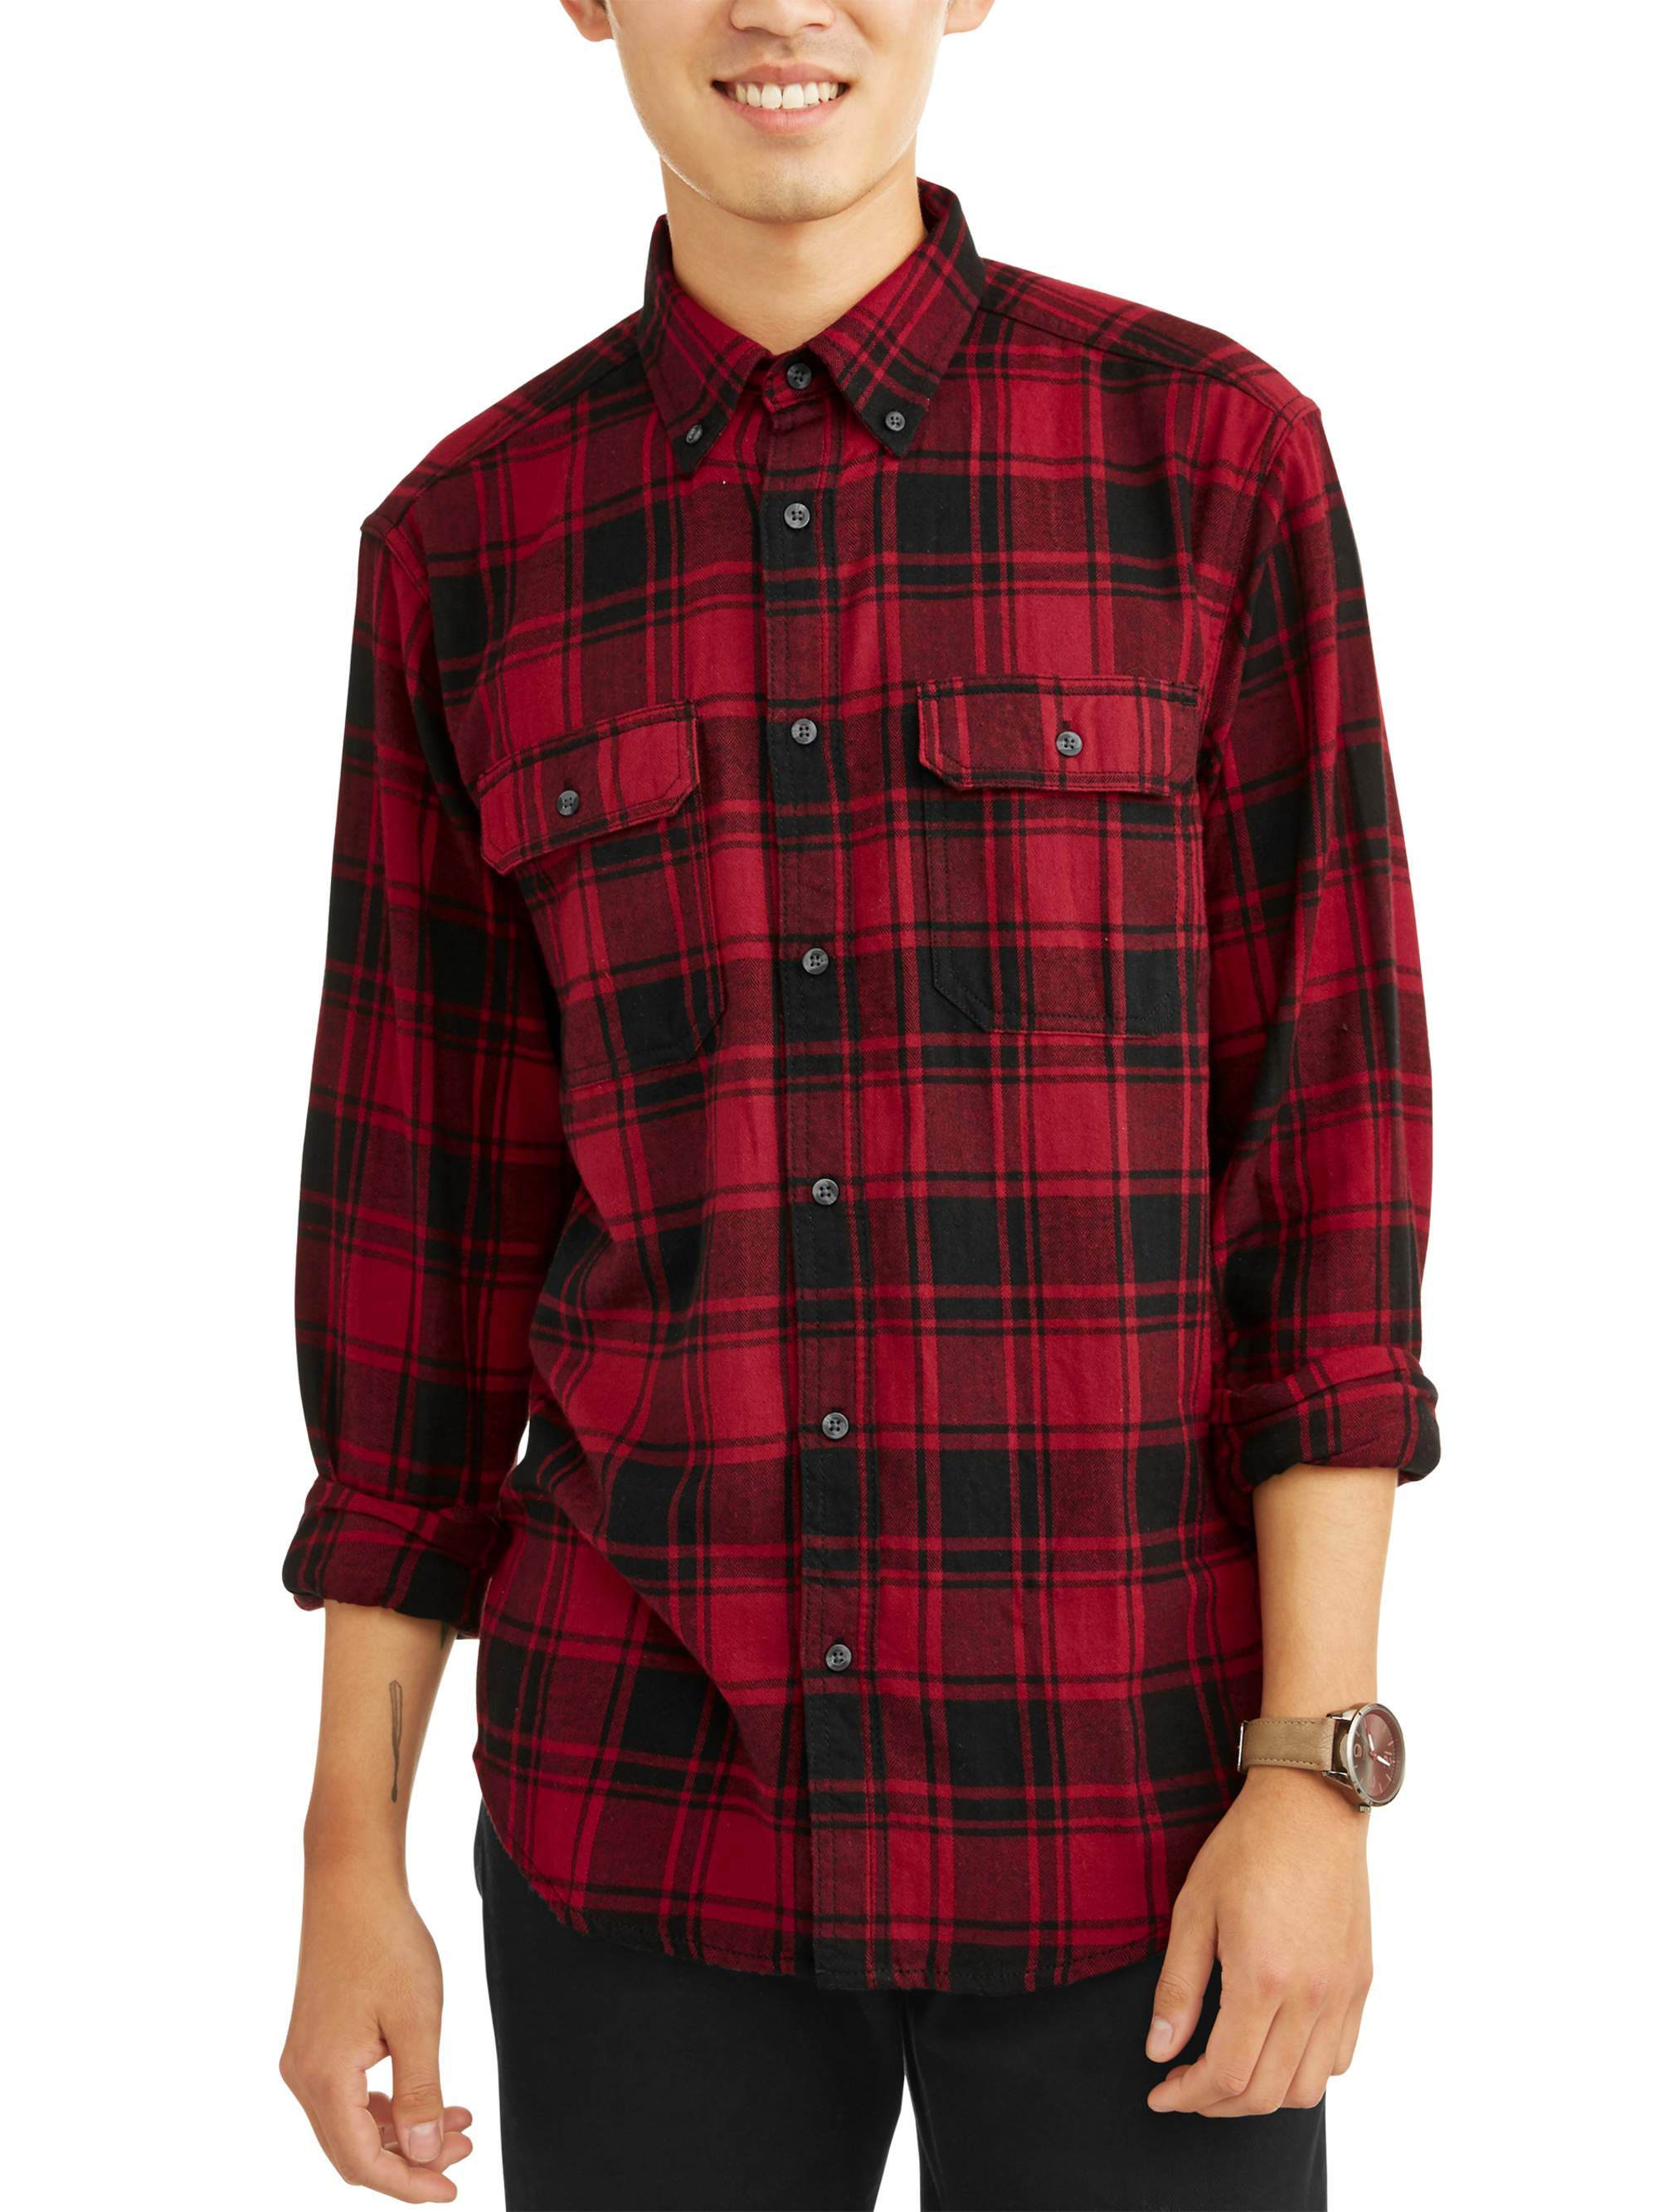 George - George Men's and Big & Tall Long Sleeve Flannel Shirt, up